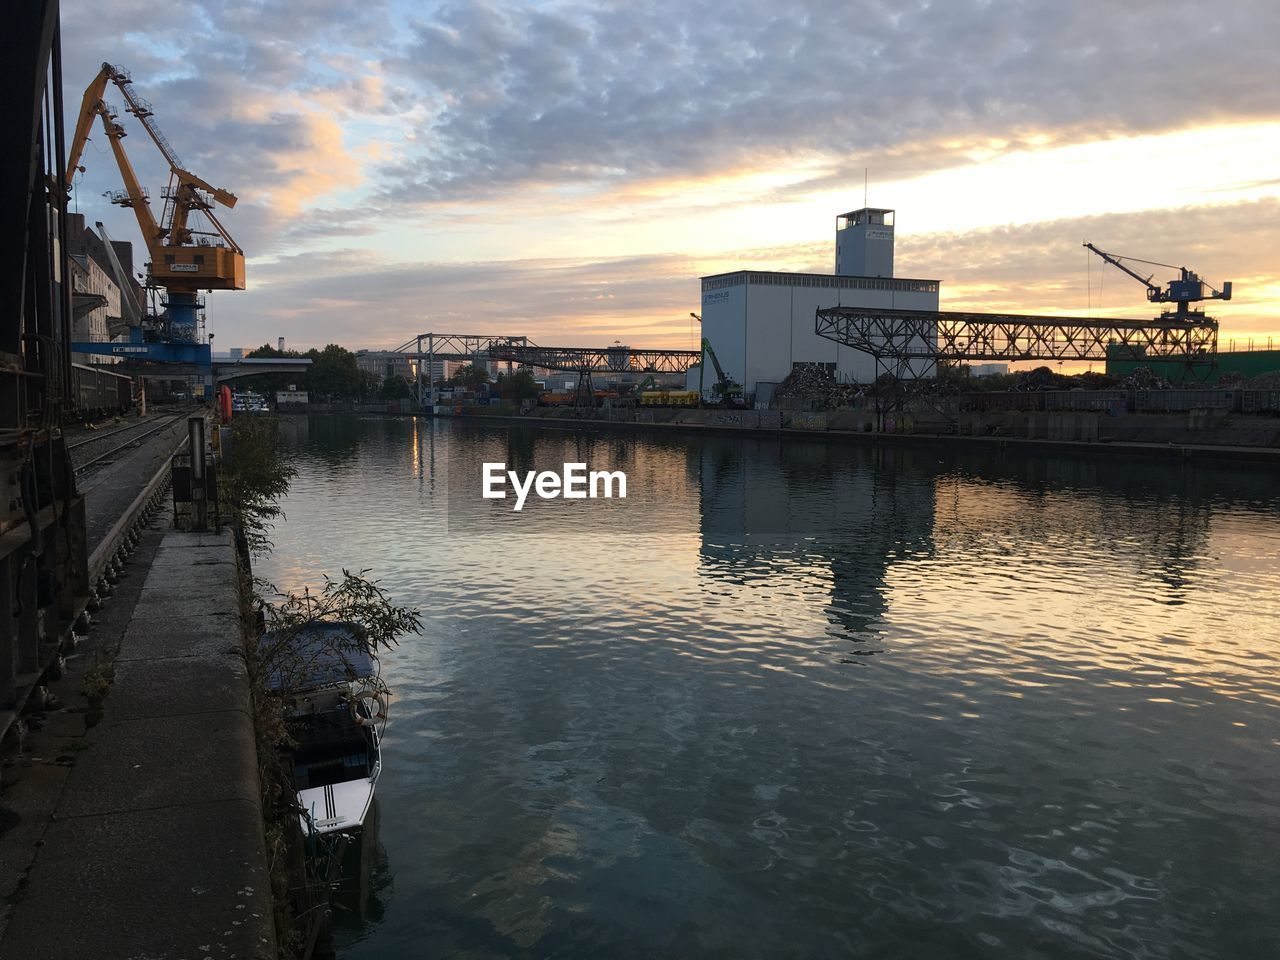 water, sky, cloud - sky, architecture, sunset, built structure, industry, nature, building exterior, transportation, reflection, nautical vessel, waterfront, freight transportation, city, no people, mode of transportation, factory, commercial dock, outdoors